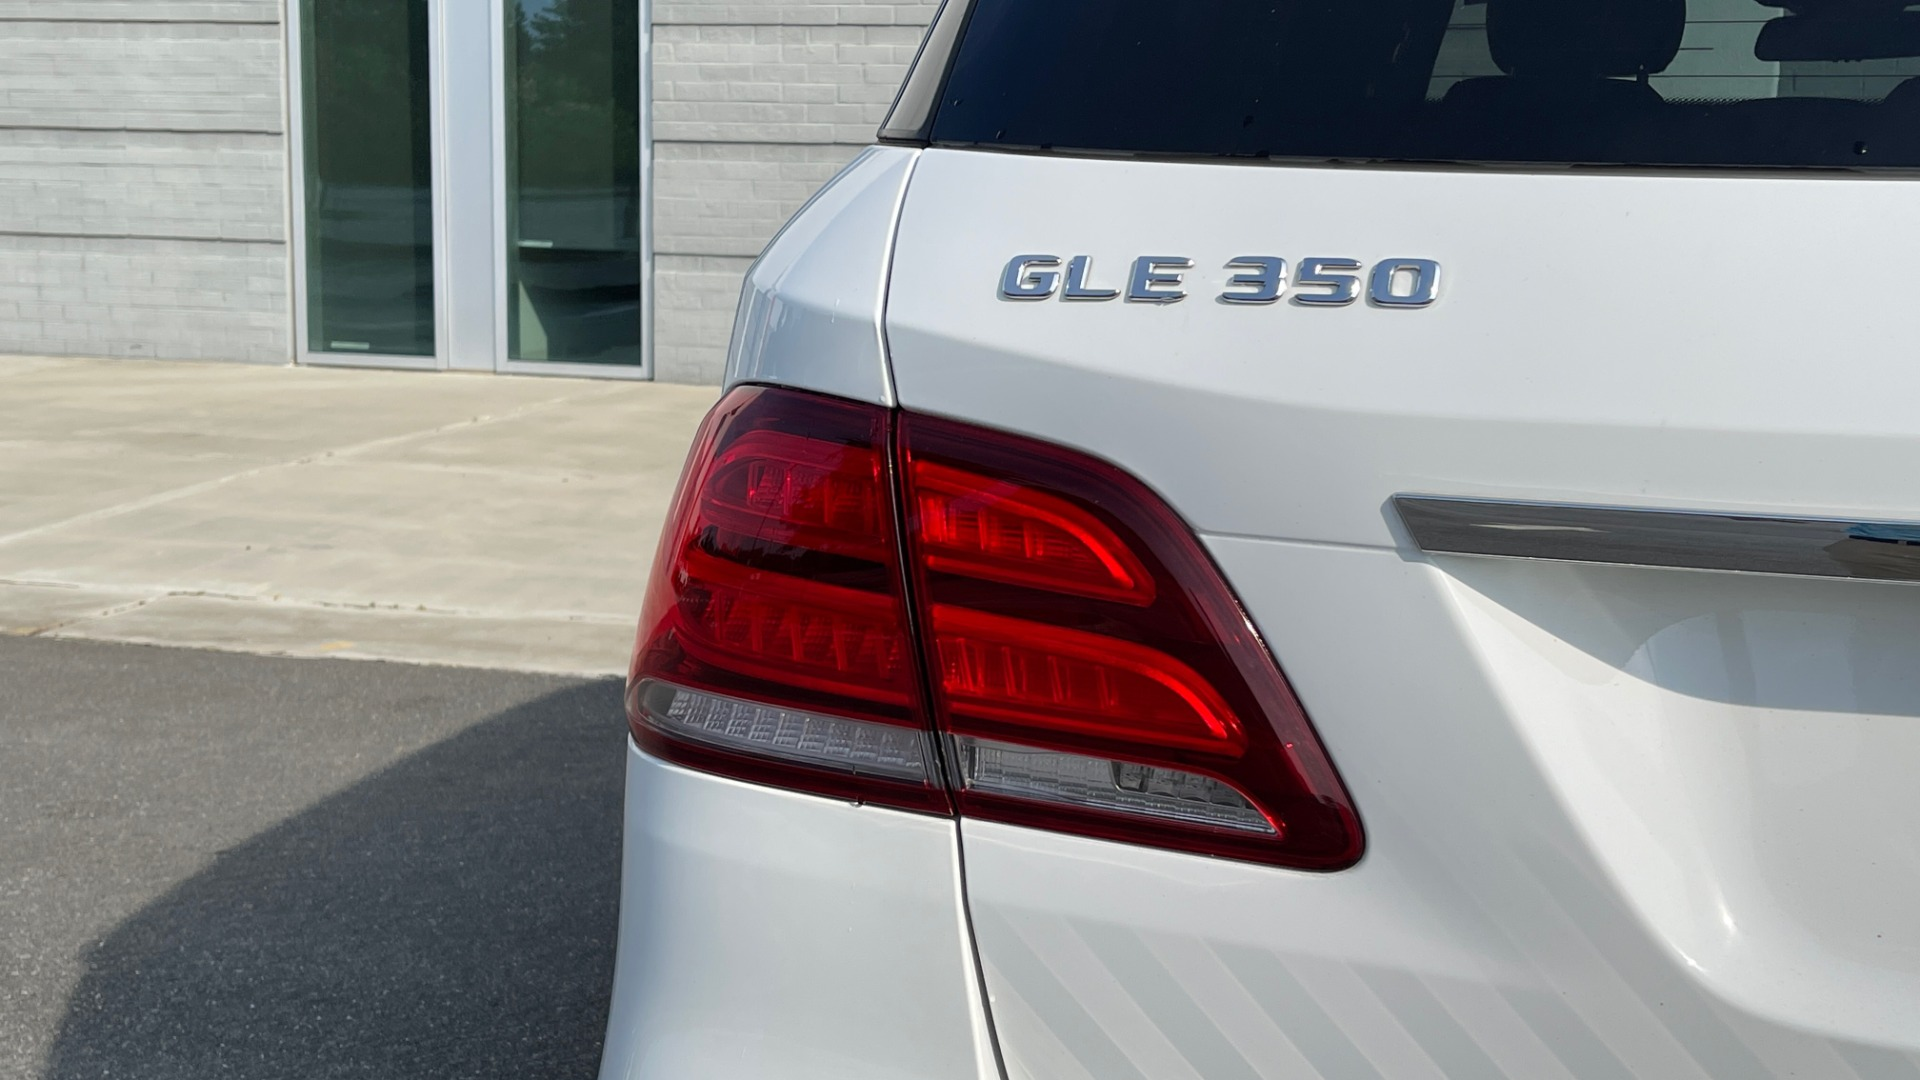 Used 2018 Mercedes-Benz GLE 350 4MATIC PREMIUM / NAV / SUNROOF / HTD STS / TRAILER HITCH / REARVIEW for sale $36,295 at Formula Imports in Charlotte NC 28227 23